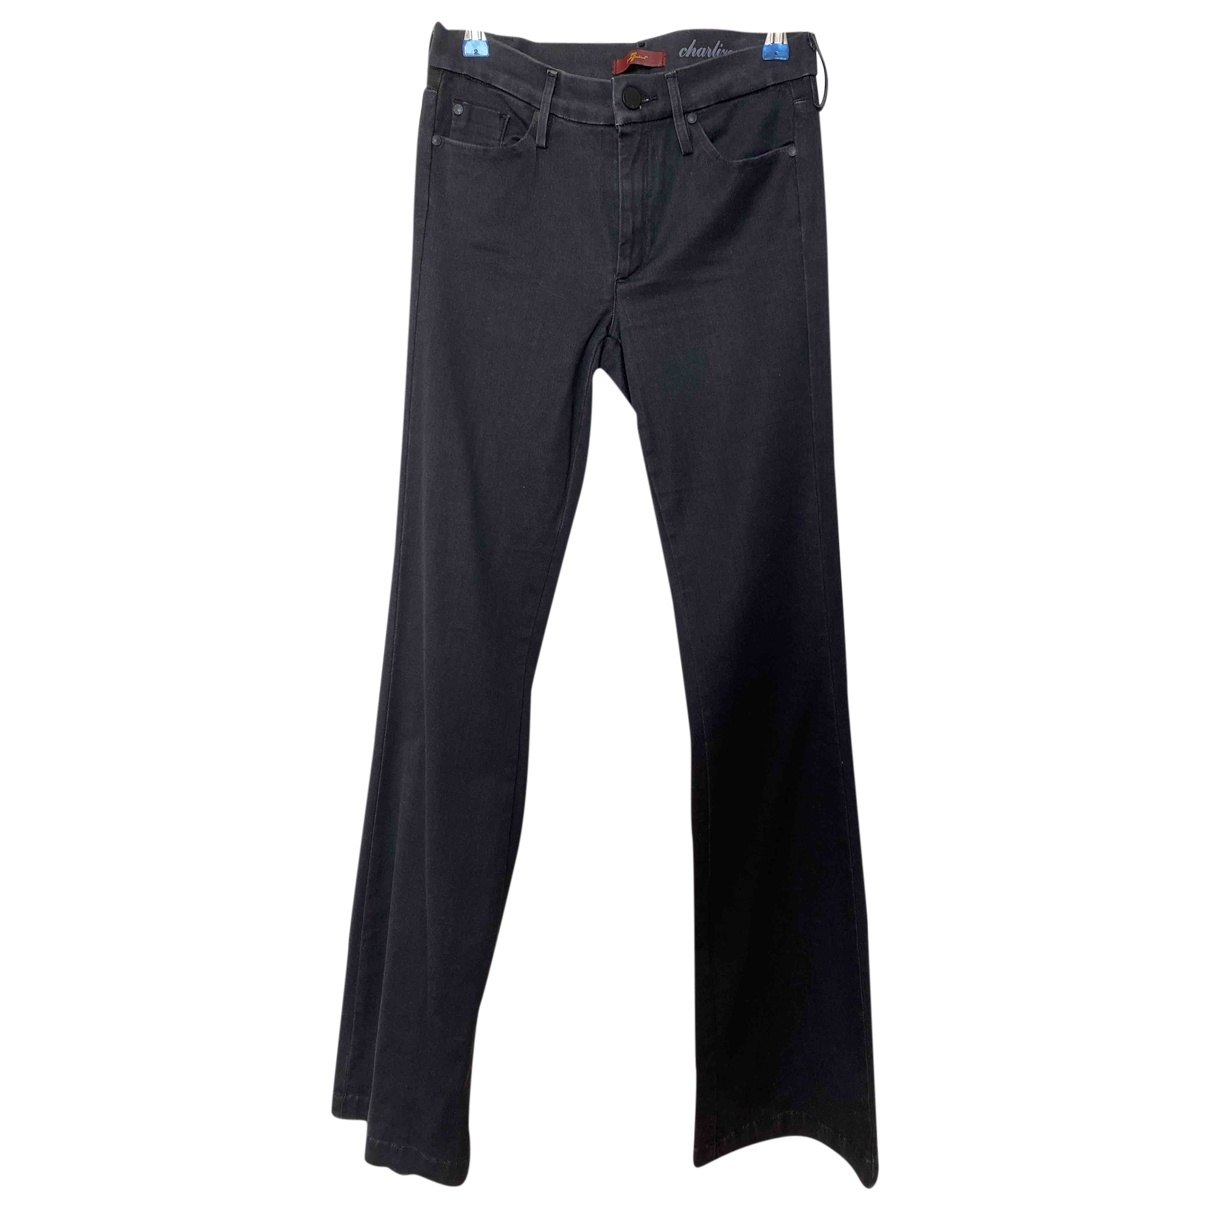 7 For All Mankind \N Black Cotton Jeans for Women 27 US